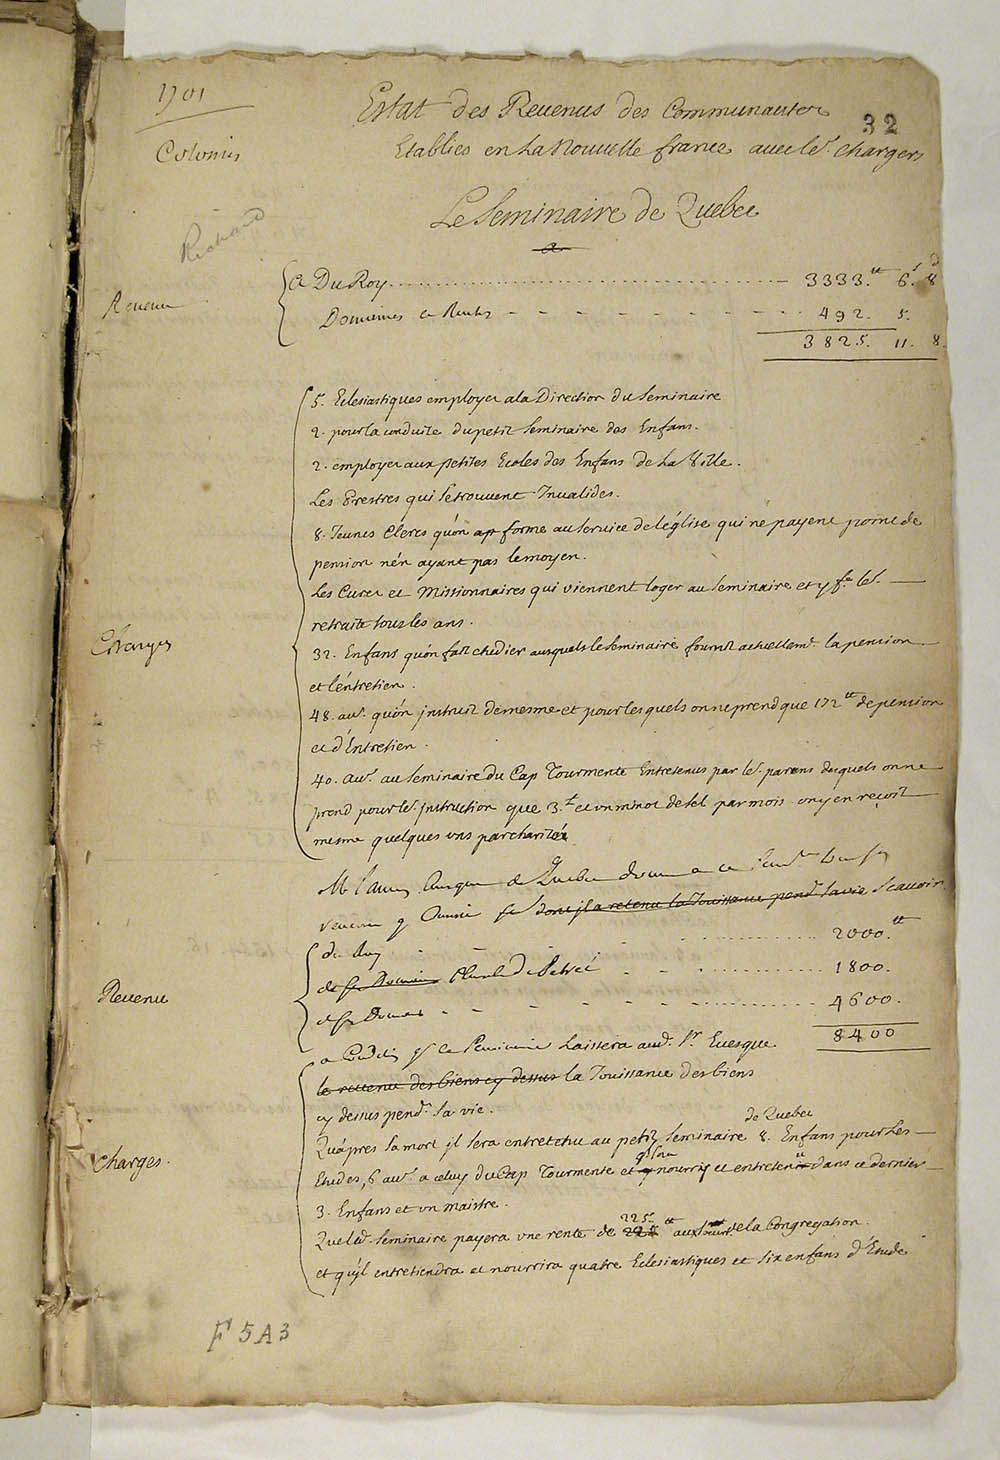 Statement of the Revenues of the Communities Established in New France, with charges, 1701, FR CAOM COL F5A 3 fol. 32-34vo